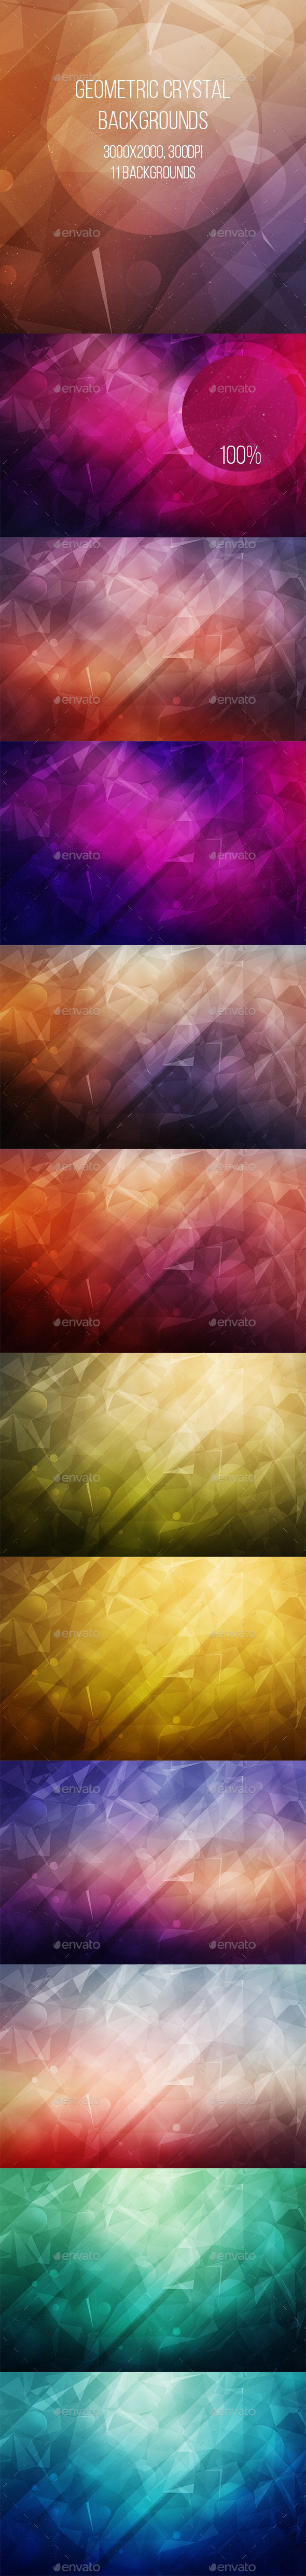 Geometric Crystal Backgrounds